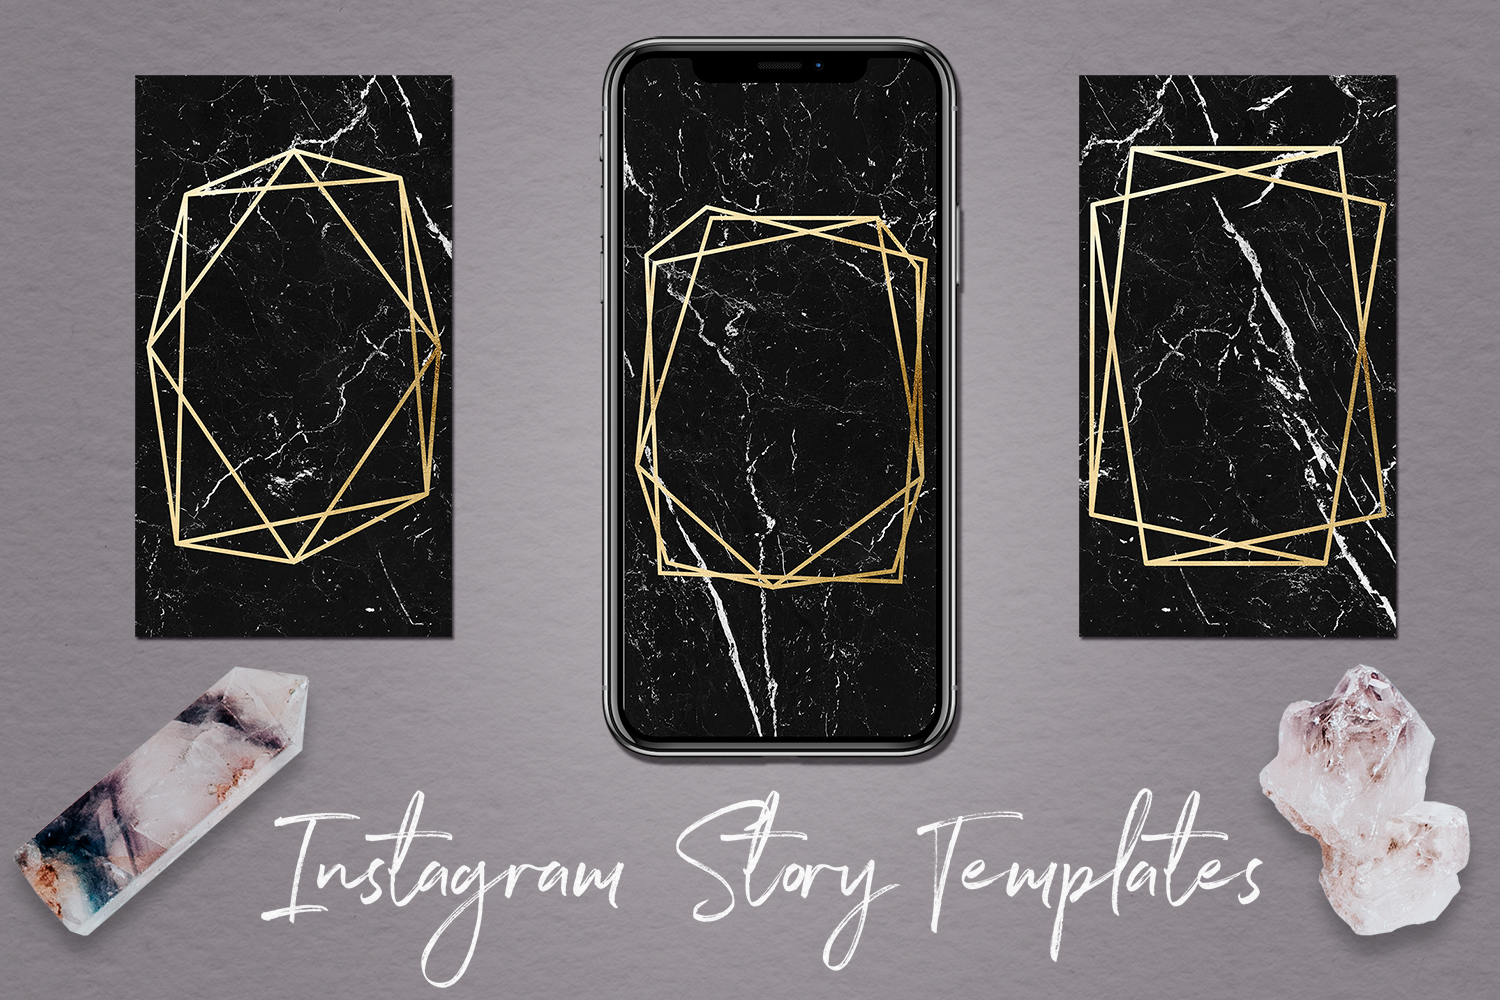 Instagram Story Templates example image 1